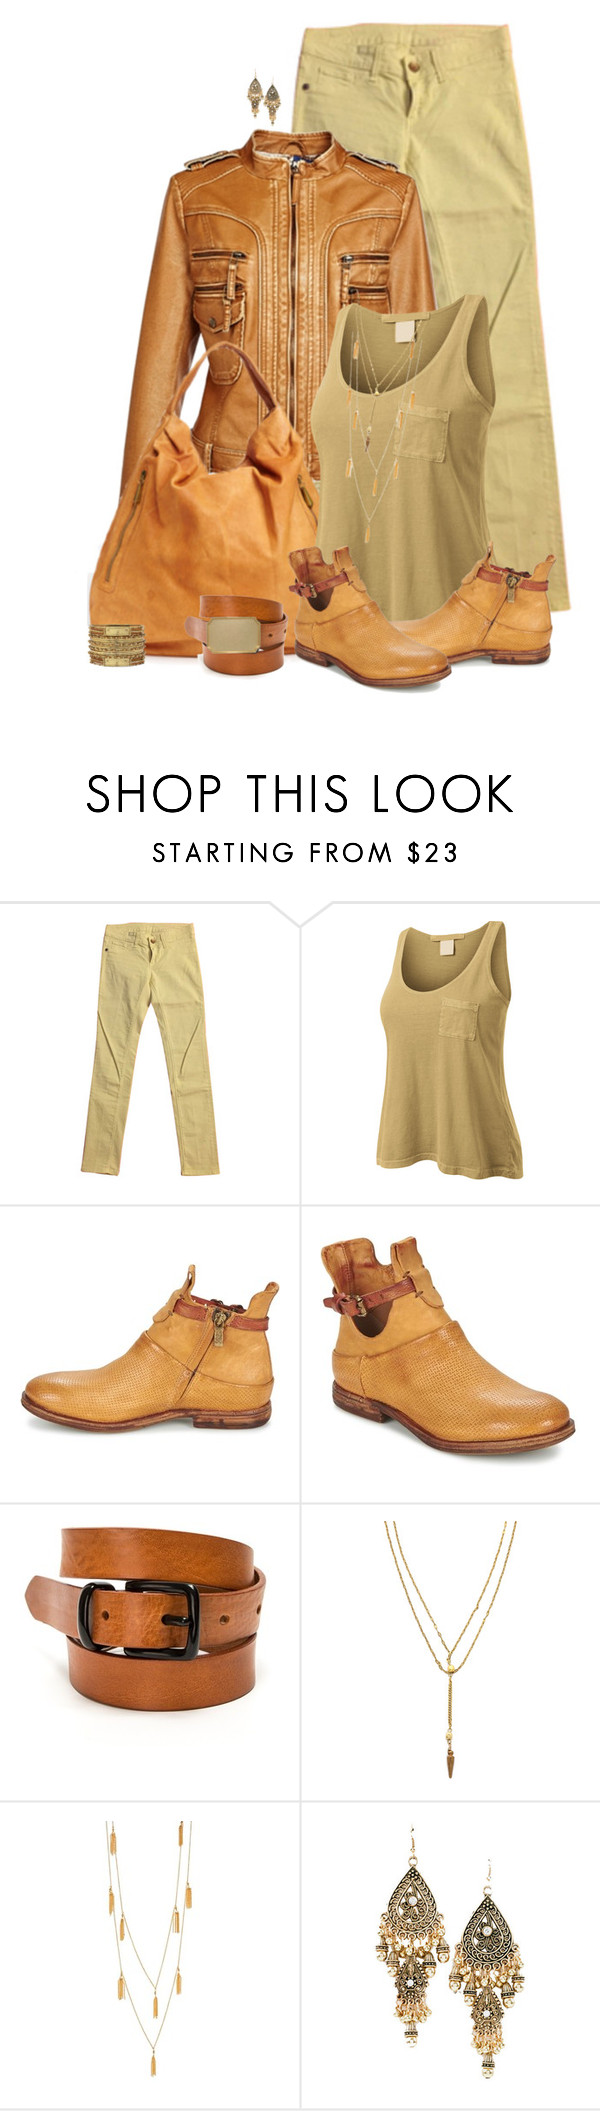 """""""set"""" by vesper1977 ❤ liked on Polyvore featuring Rich & Royal, Charles Jourdan, LE3NO, A.S. 98, Vanessa Mooney, Gorjana, women's clothing, women, female and woman"""